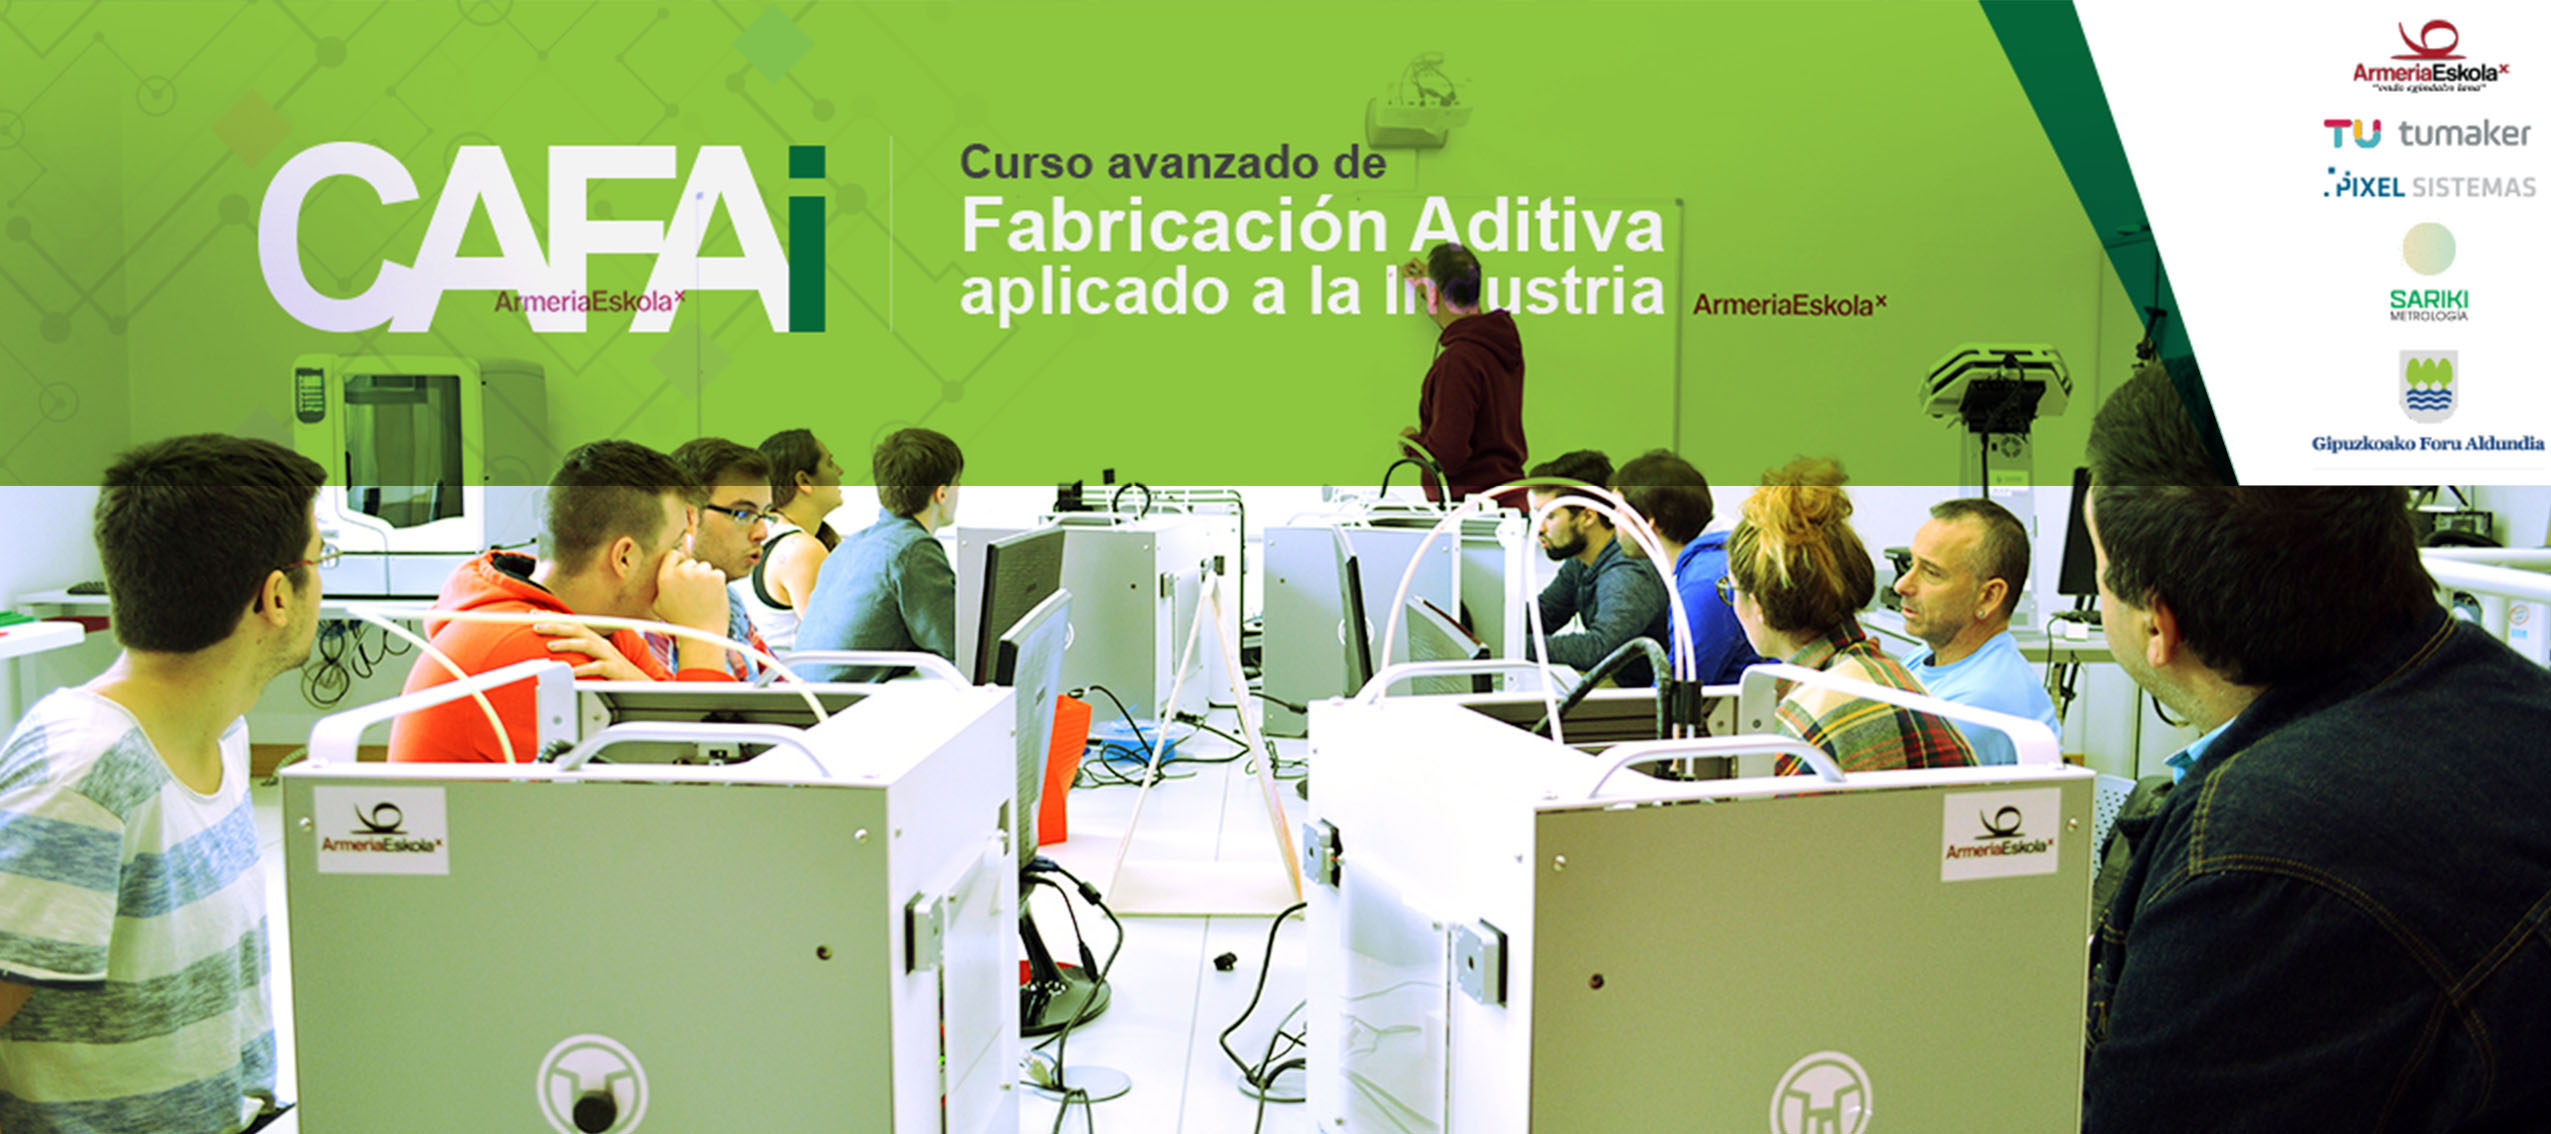 CAFAi, first advanced training in Additive Manufacturing applied to Industry in the Basque Country